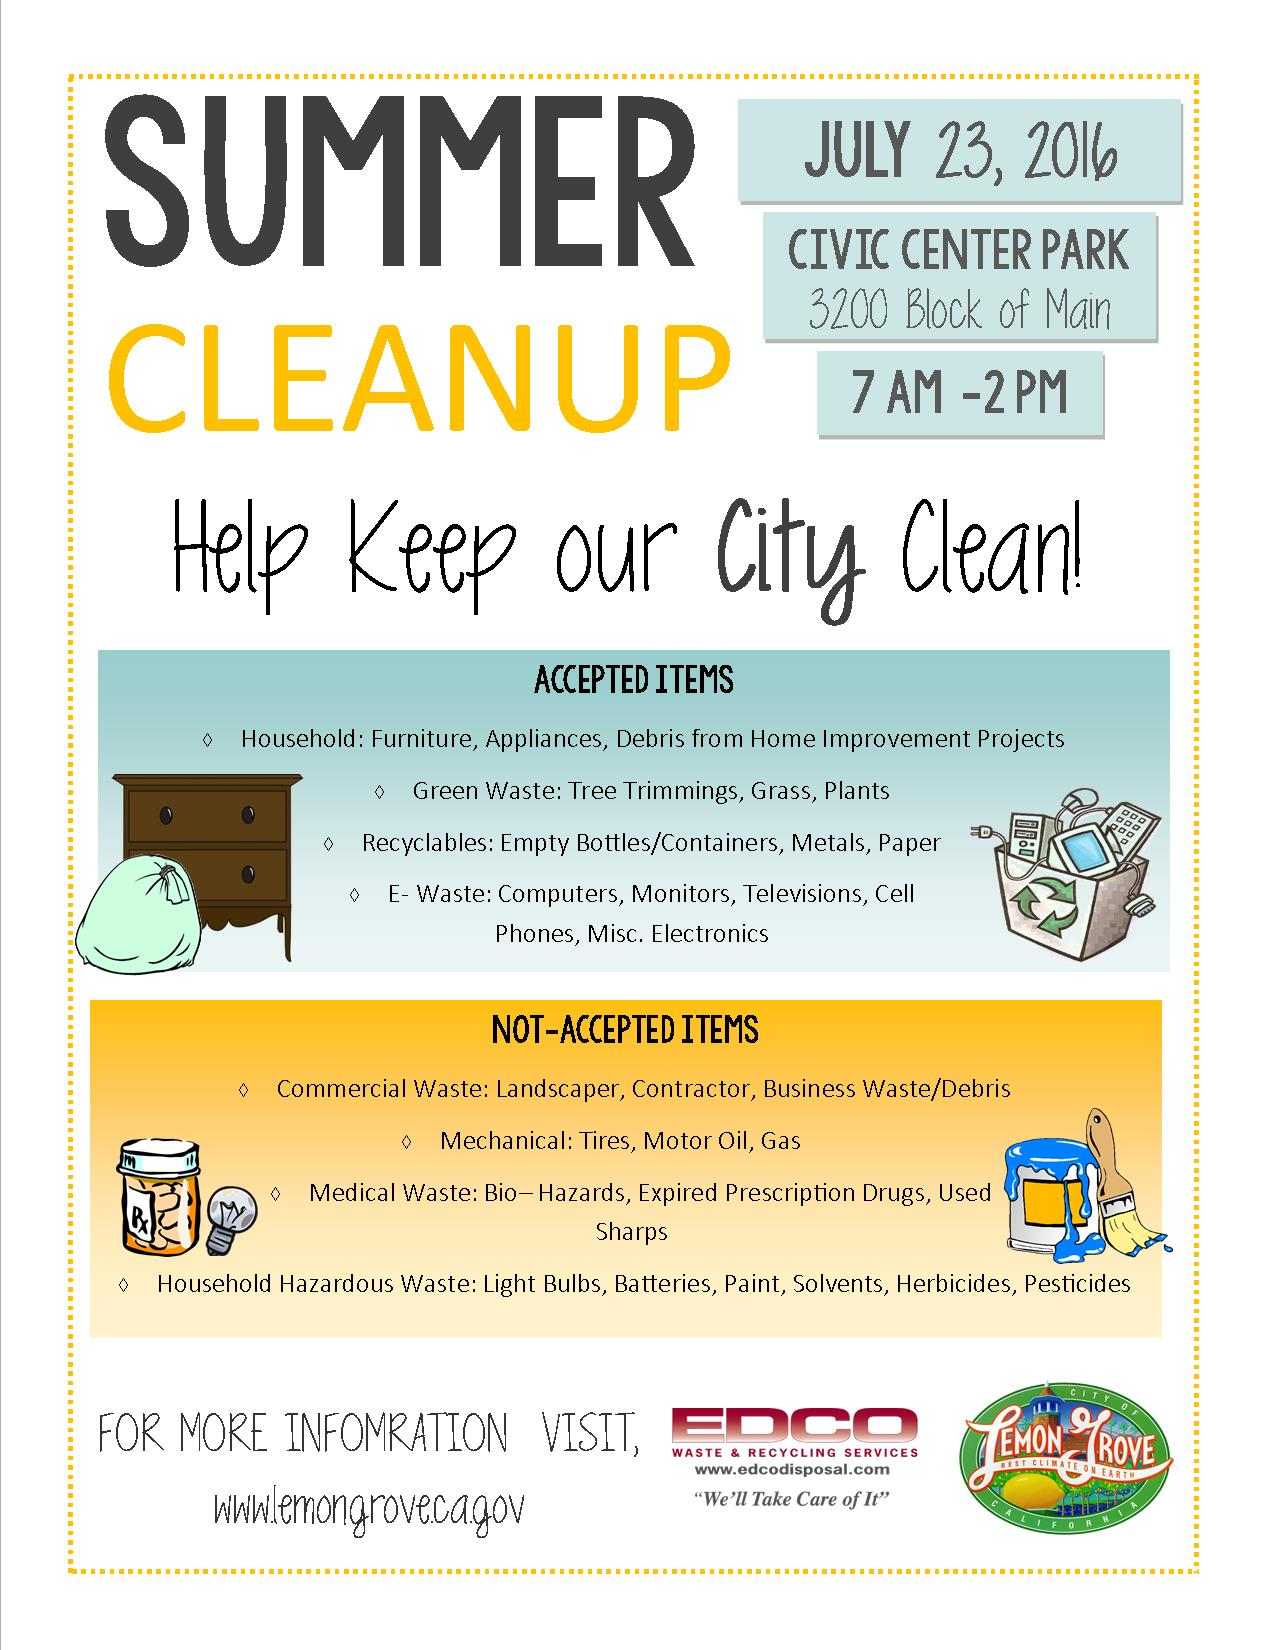 2016 Summer Clean Up